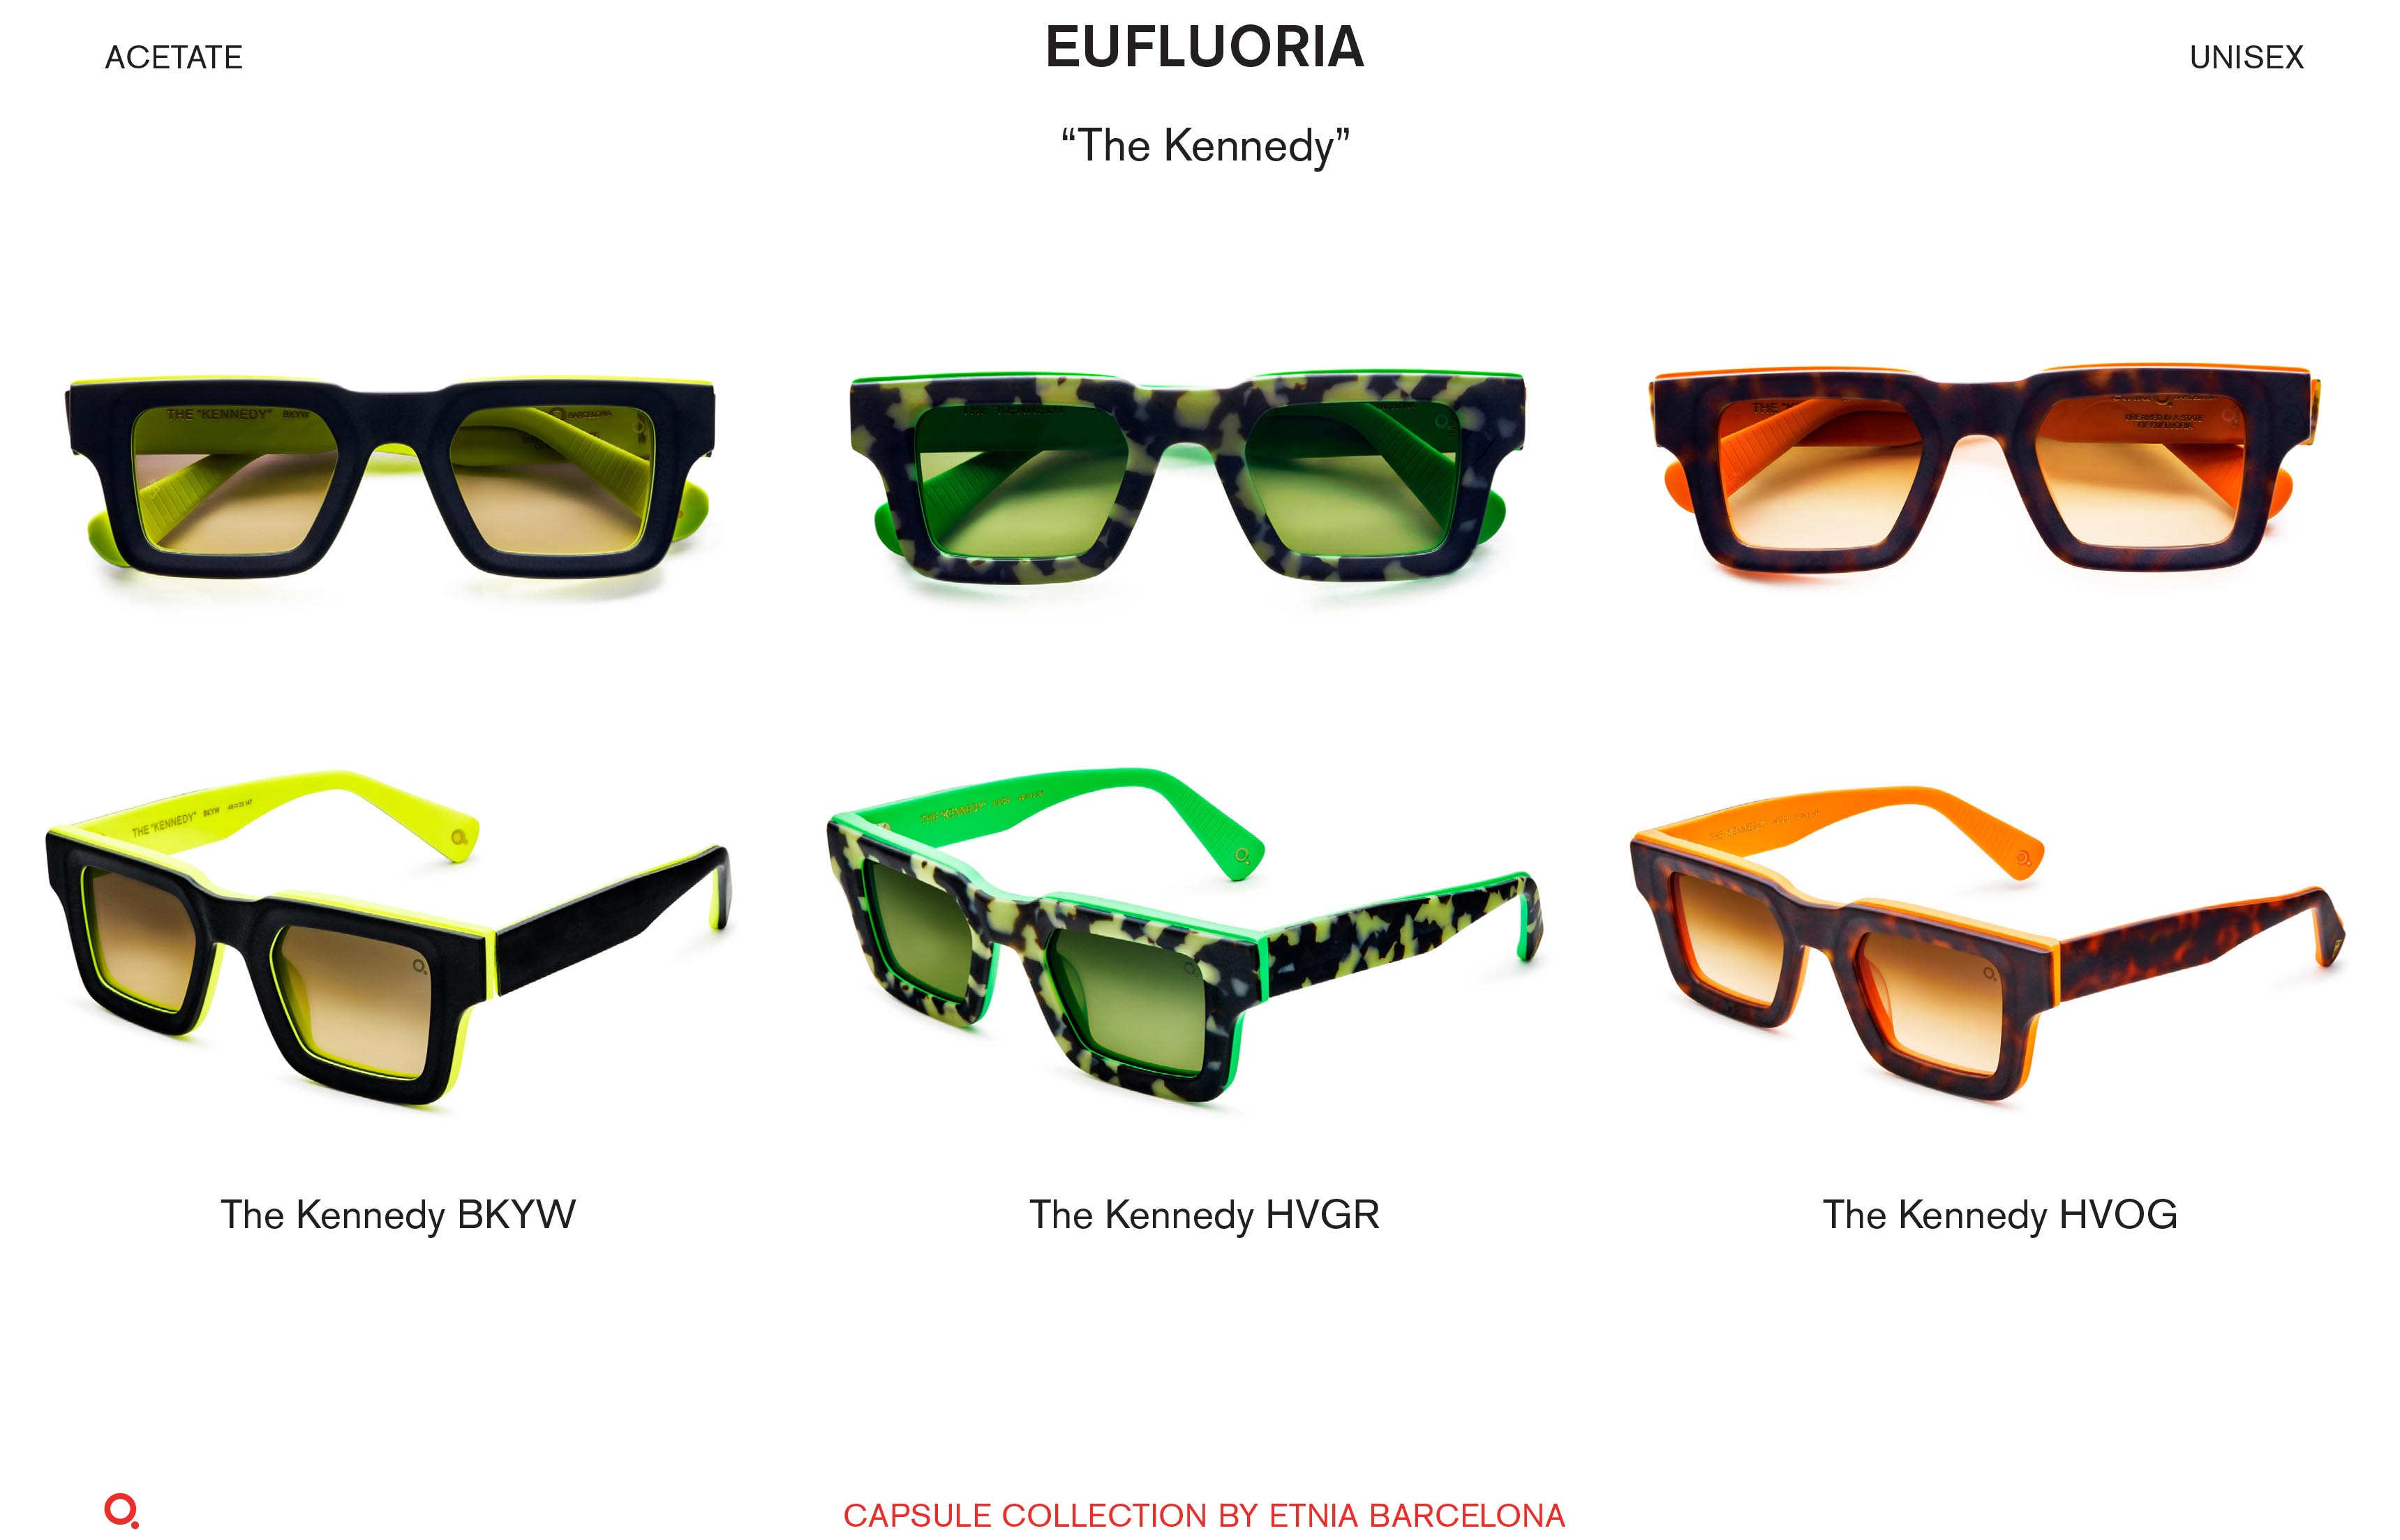 ETNIA BARCELONA Capsule Collection – Eufluoria